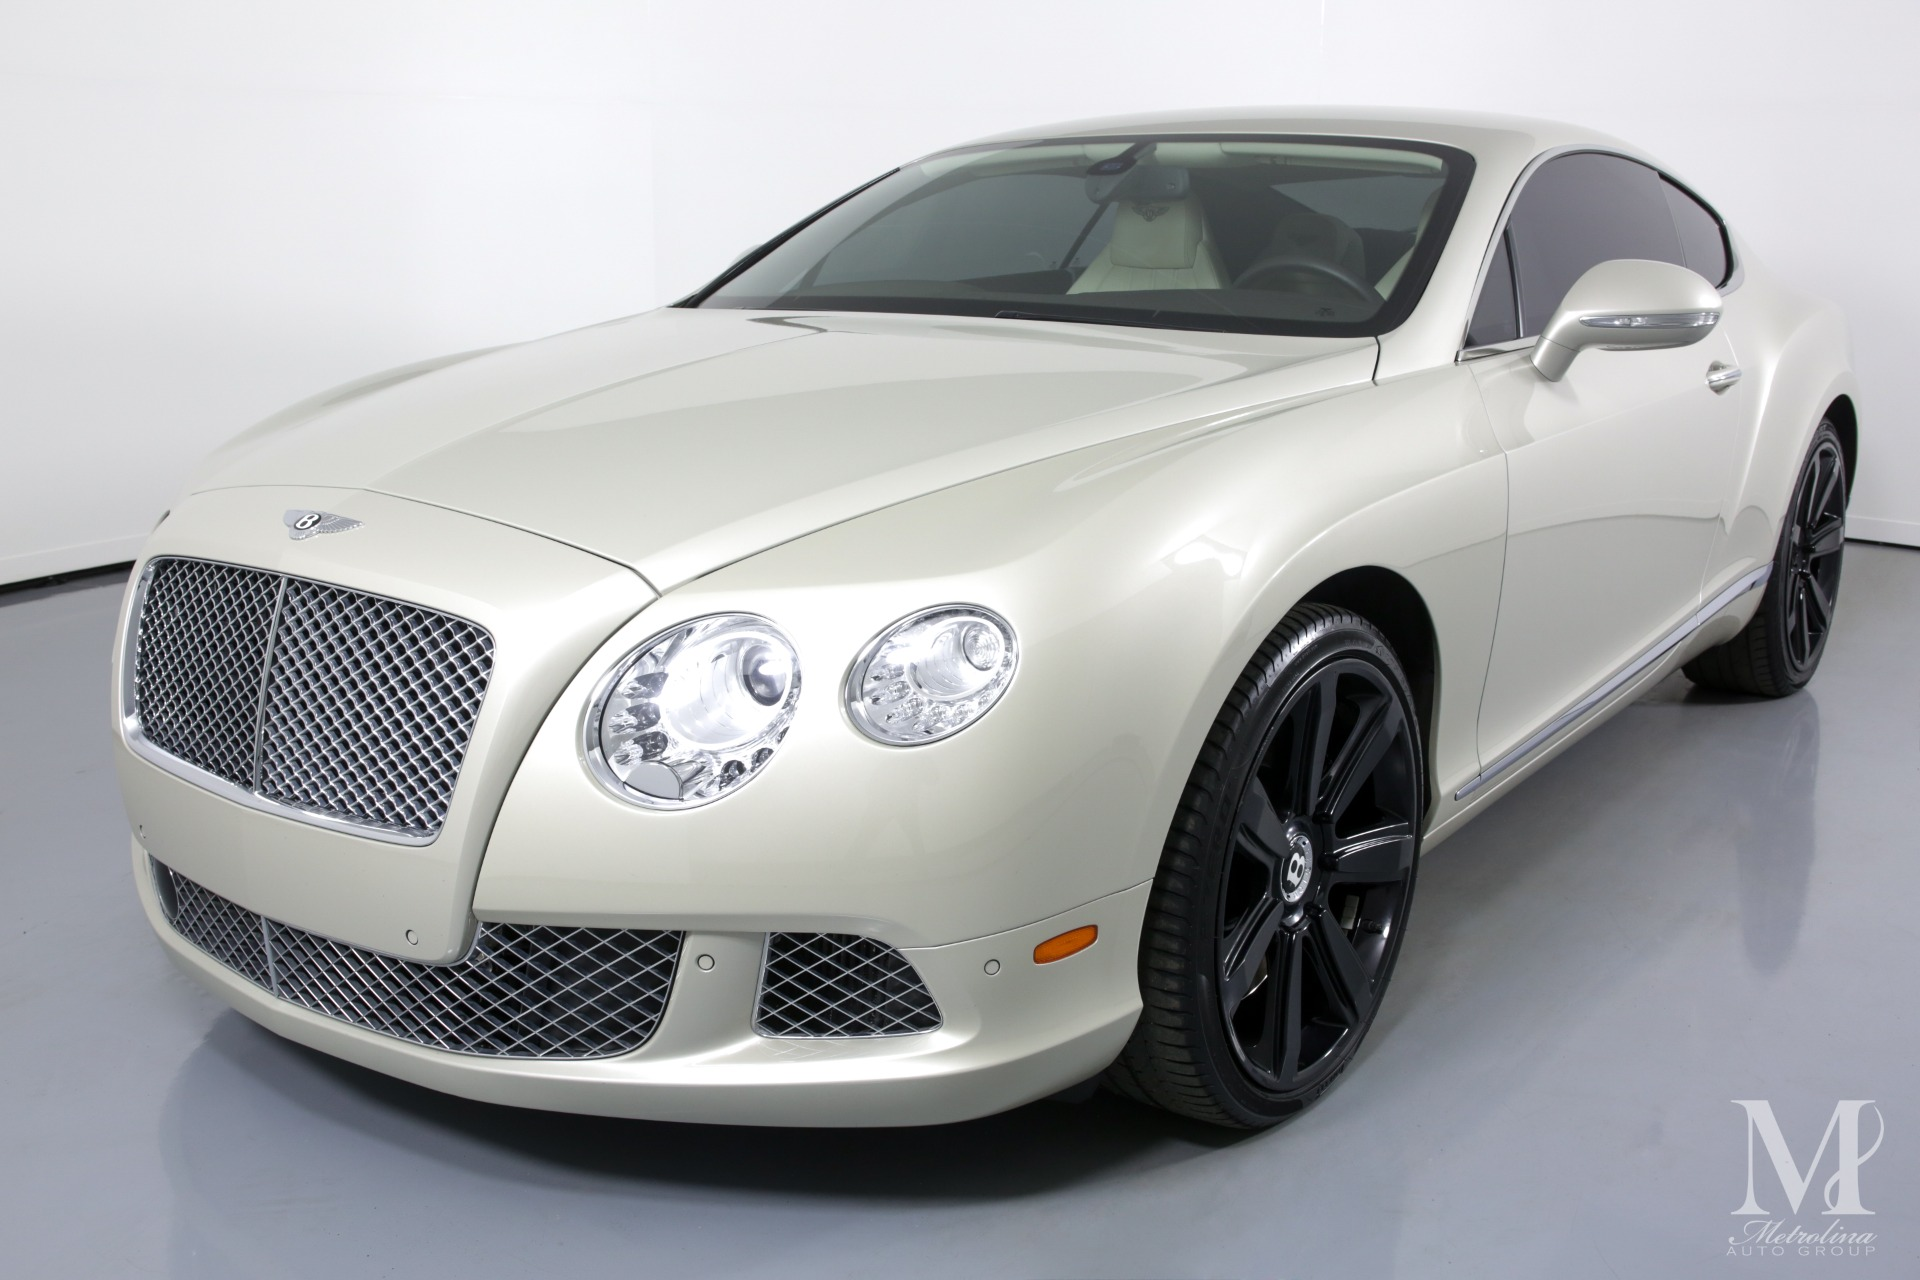 Used 2012 Bentley Continental GT for sale $74,996 at Metrolina Auto Group in Charlotte NC 28217 - 4